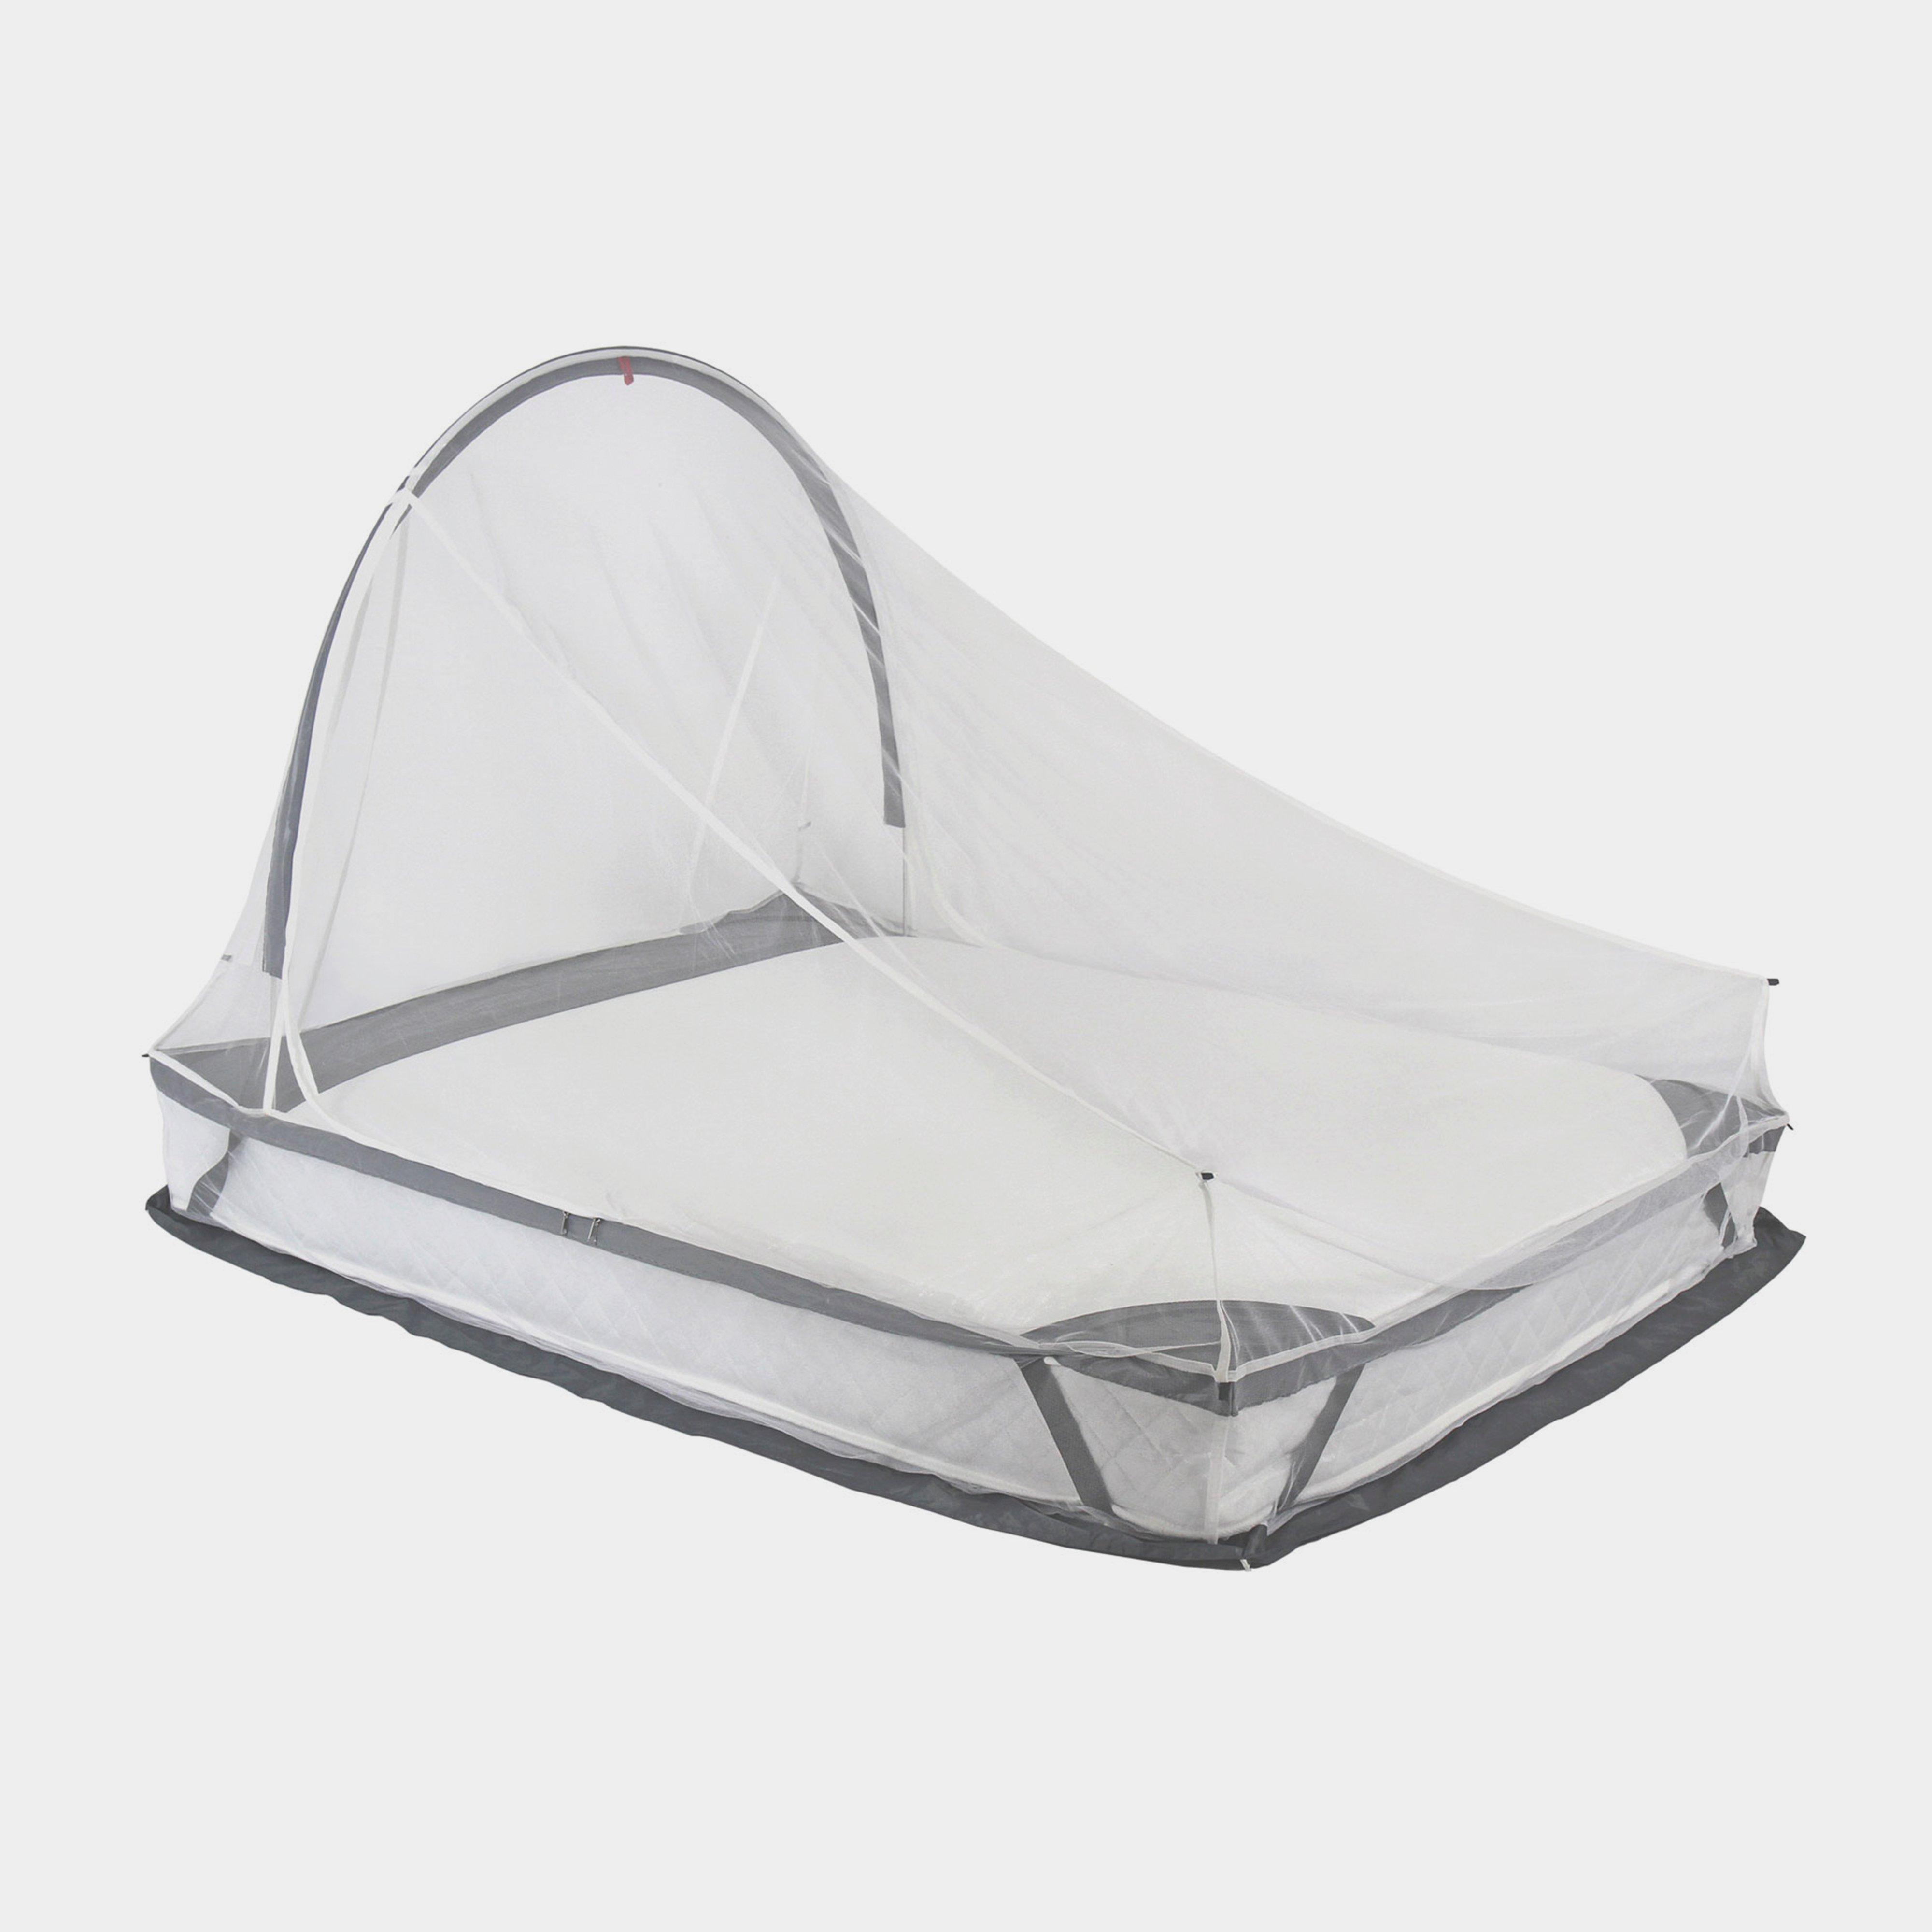 Lifesystems Arc Self Supporting Mosquito Net Double - White, White